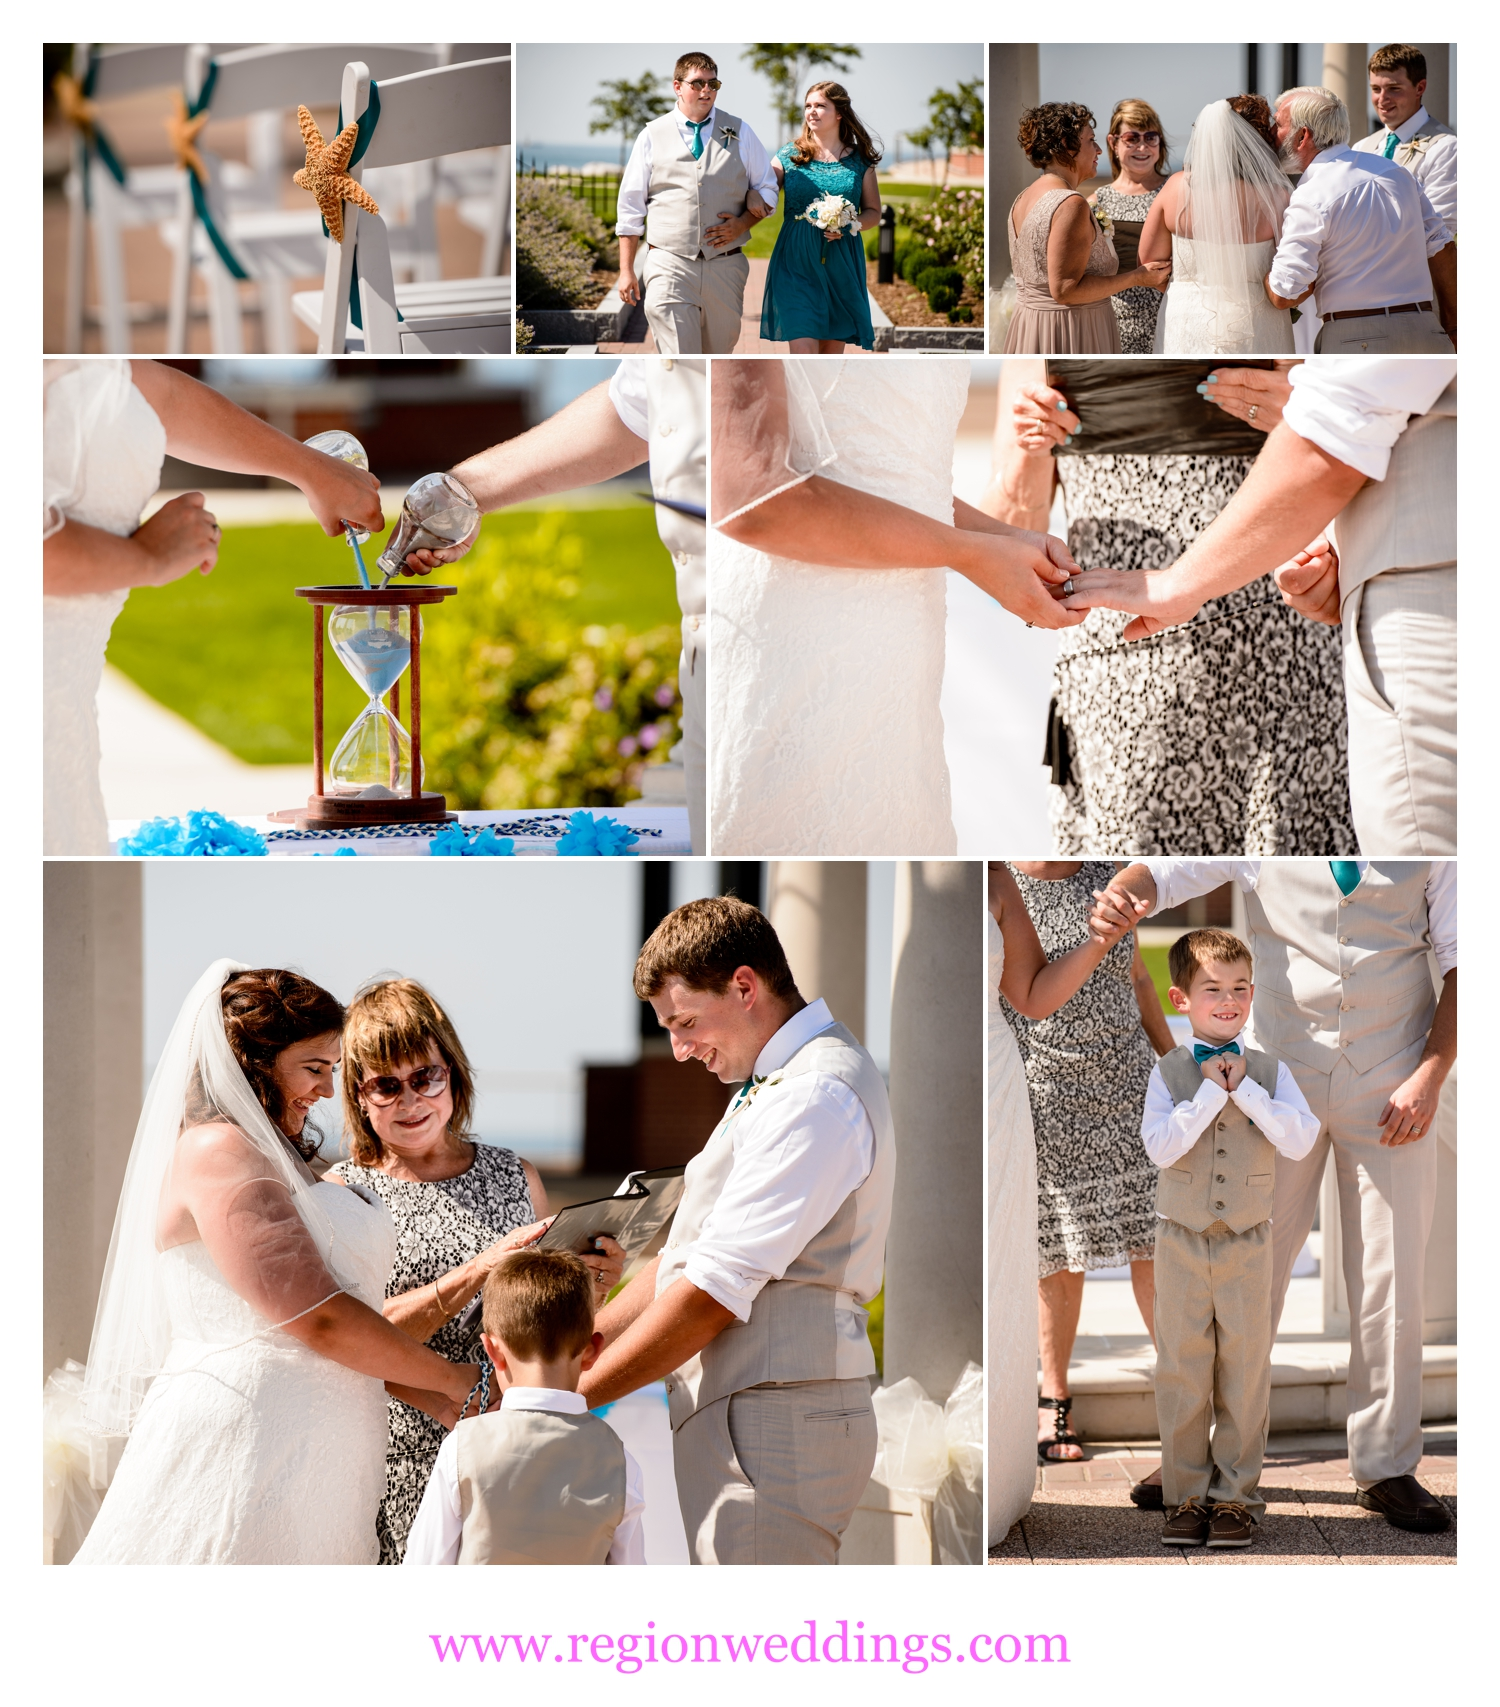 Outdoor wedding ceremony at Whiting Lakefront Park.